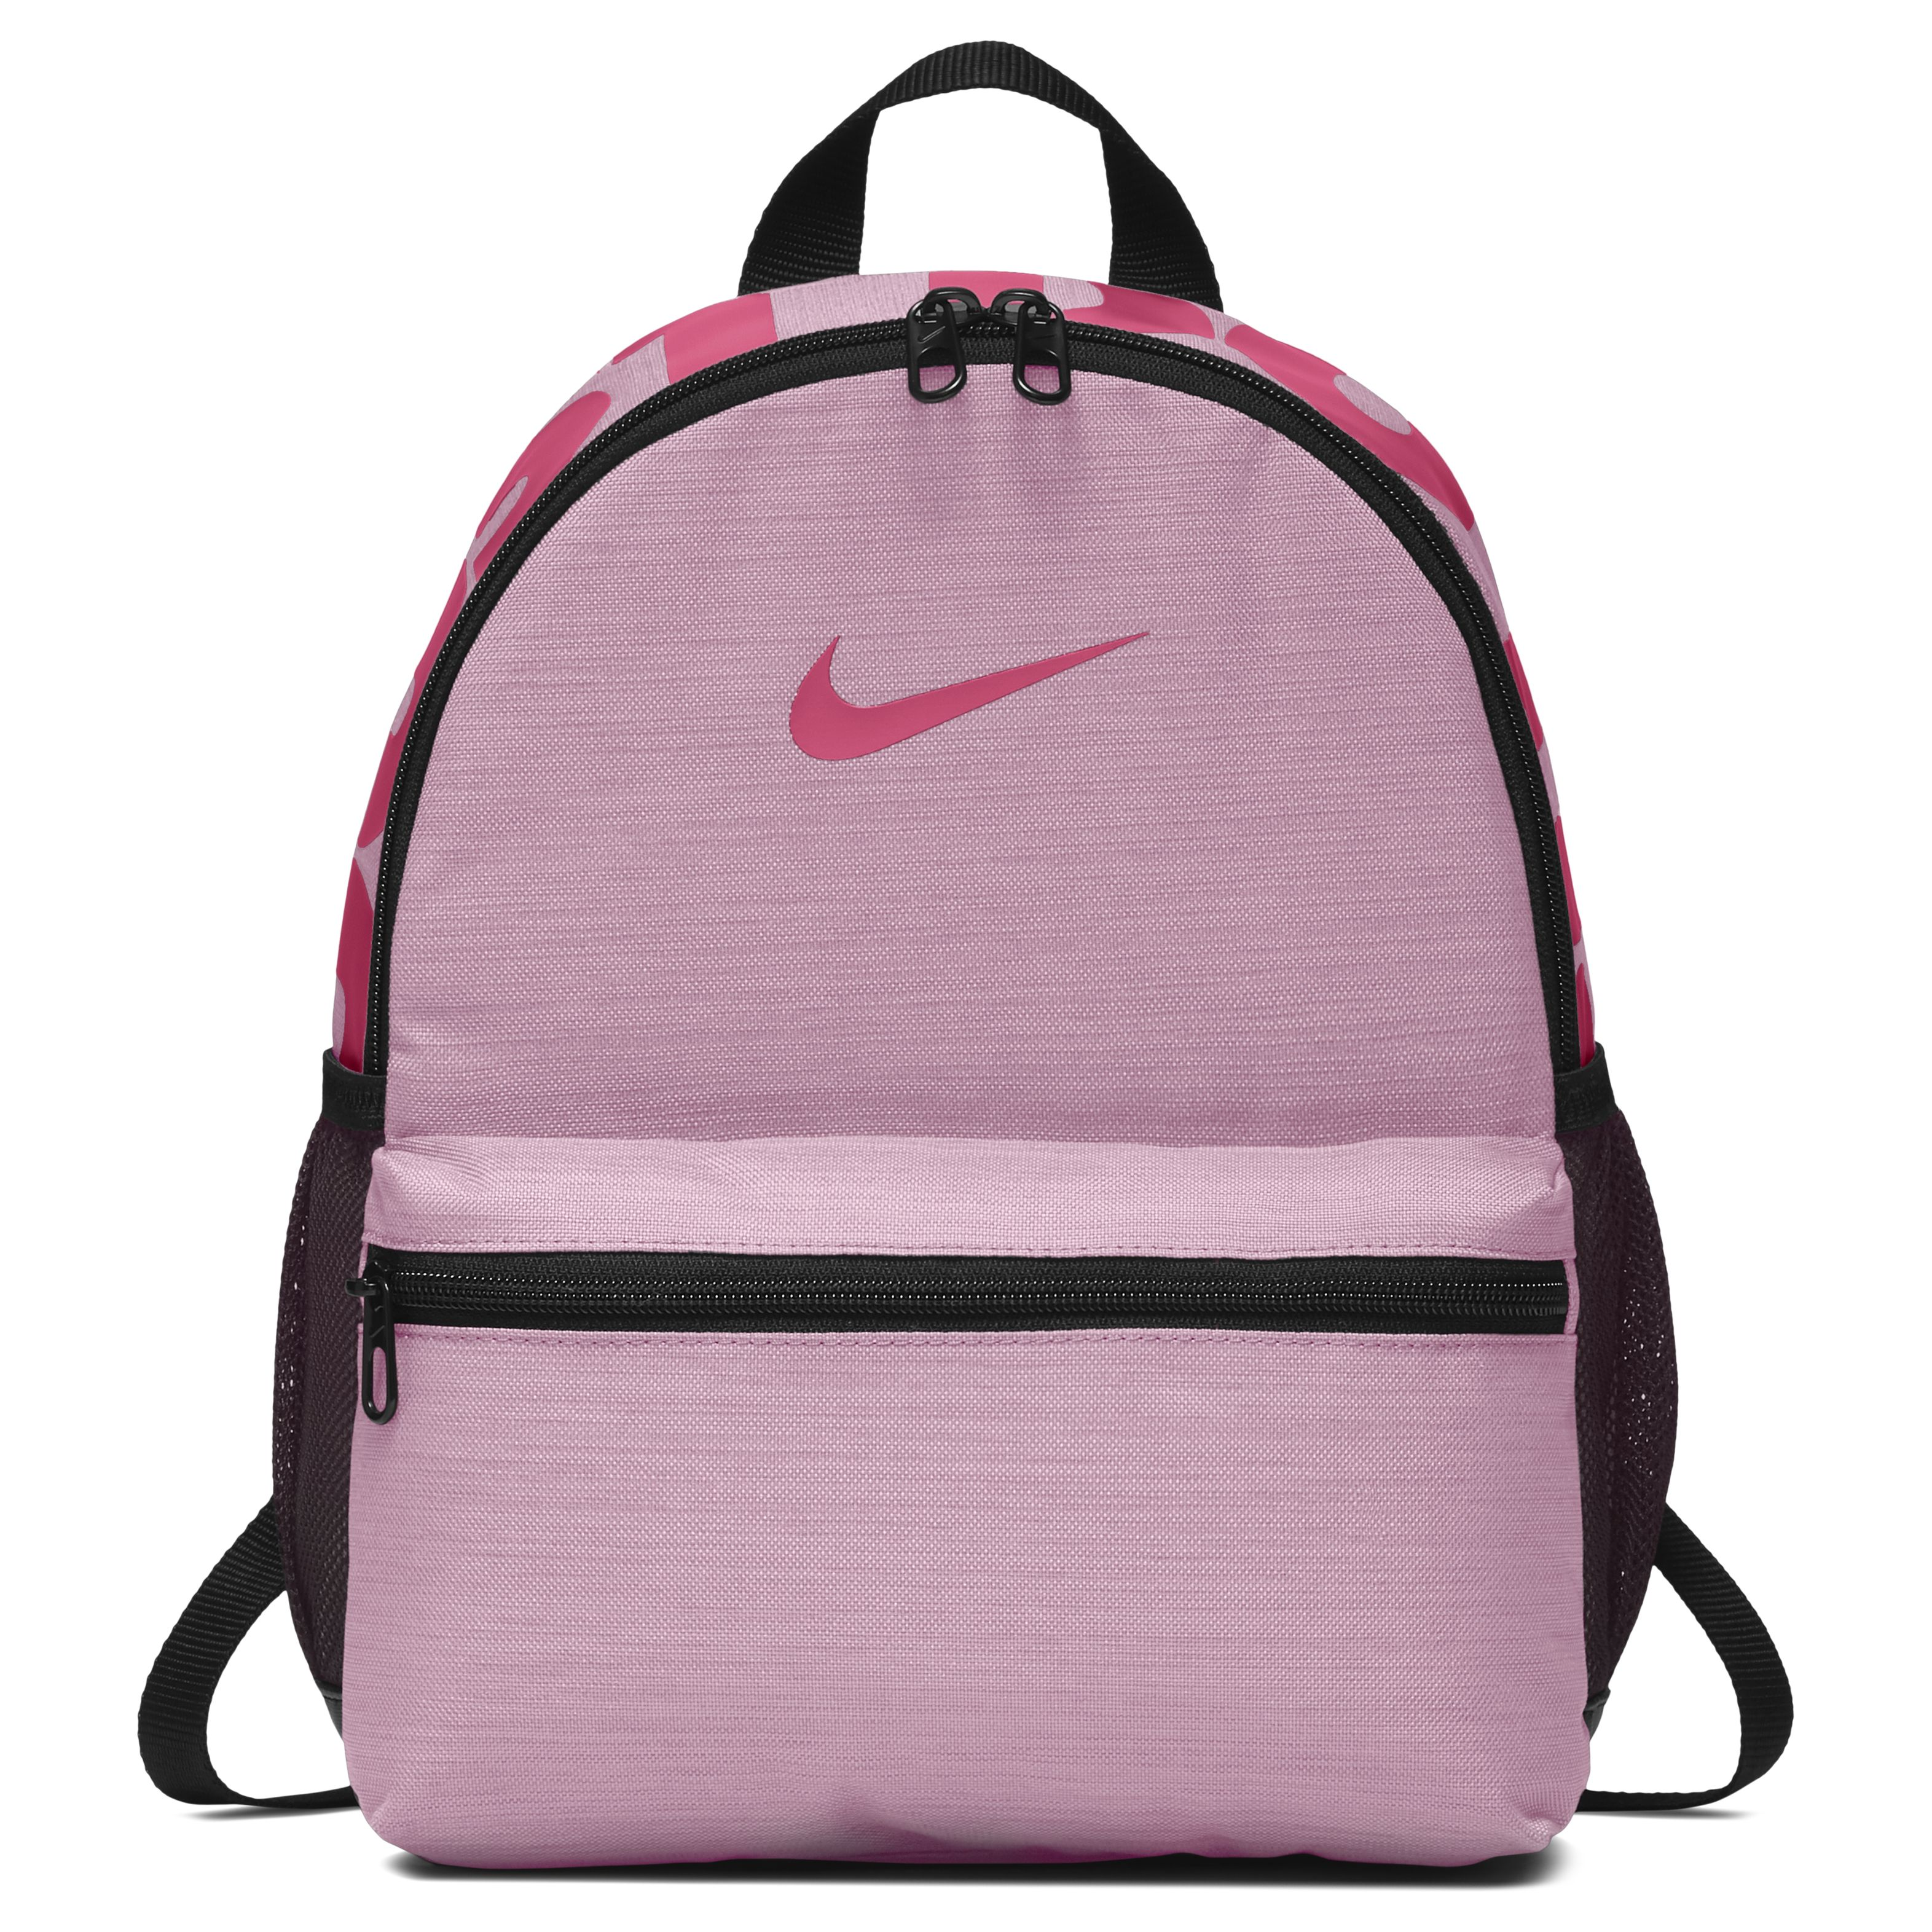 fc10d409 Рюкзак Nike Brasilia Just Do It Mini Pink/Black/Rush Pink - фото 1